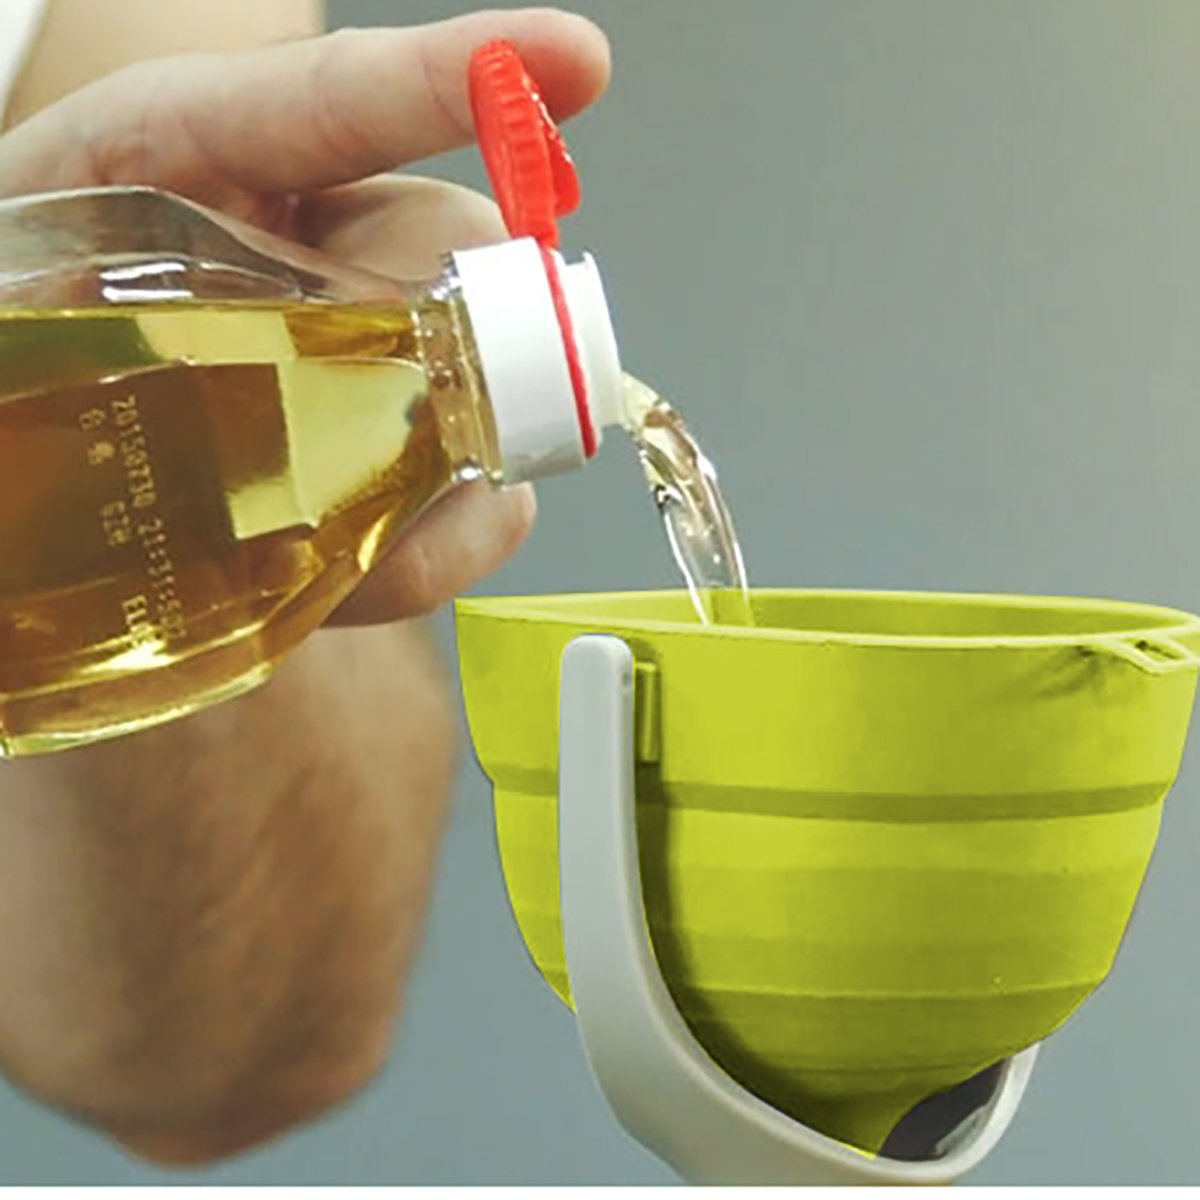 LONGLISHENG Collapsible Funnel, Silicone Folding Funnel Kitchen Funnels with Handles for Liquid Transfer